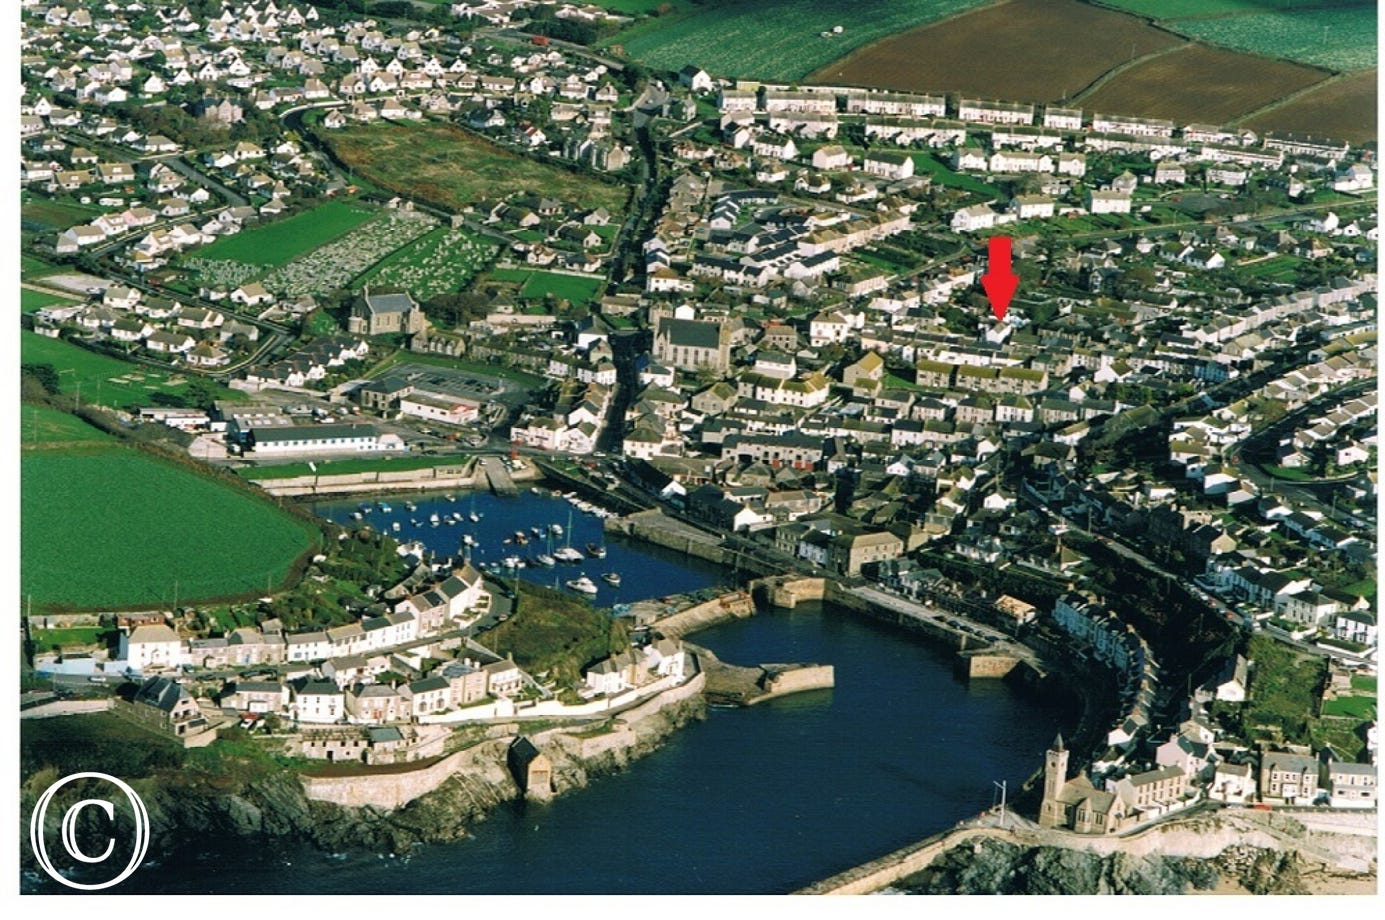 Aerial view of Porthleven showing Forth Scol location